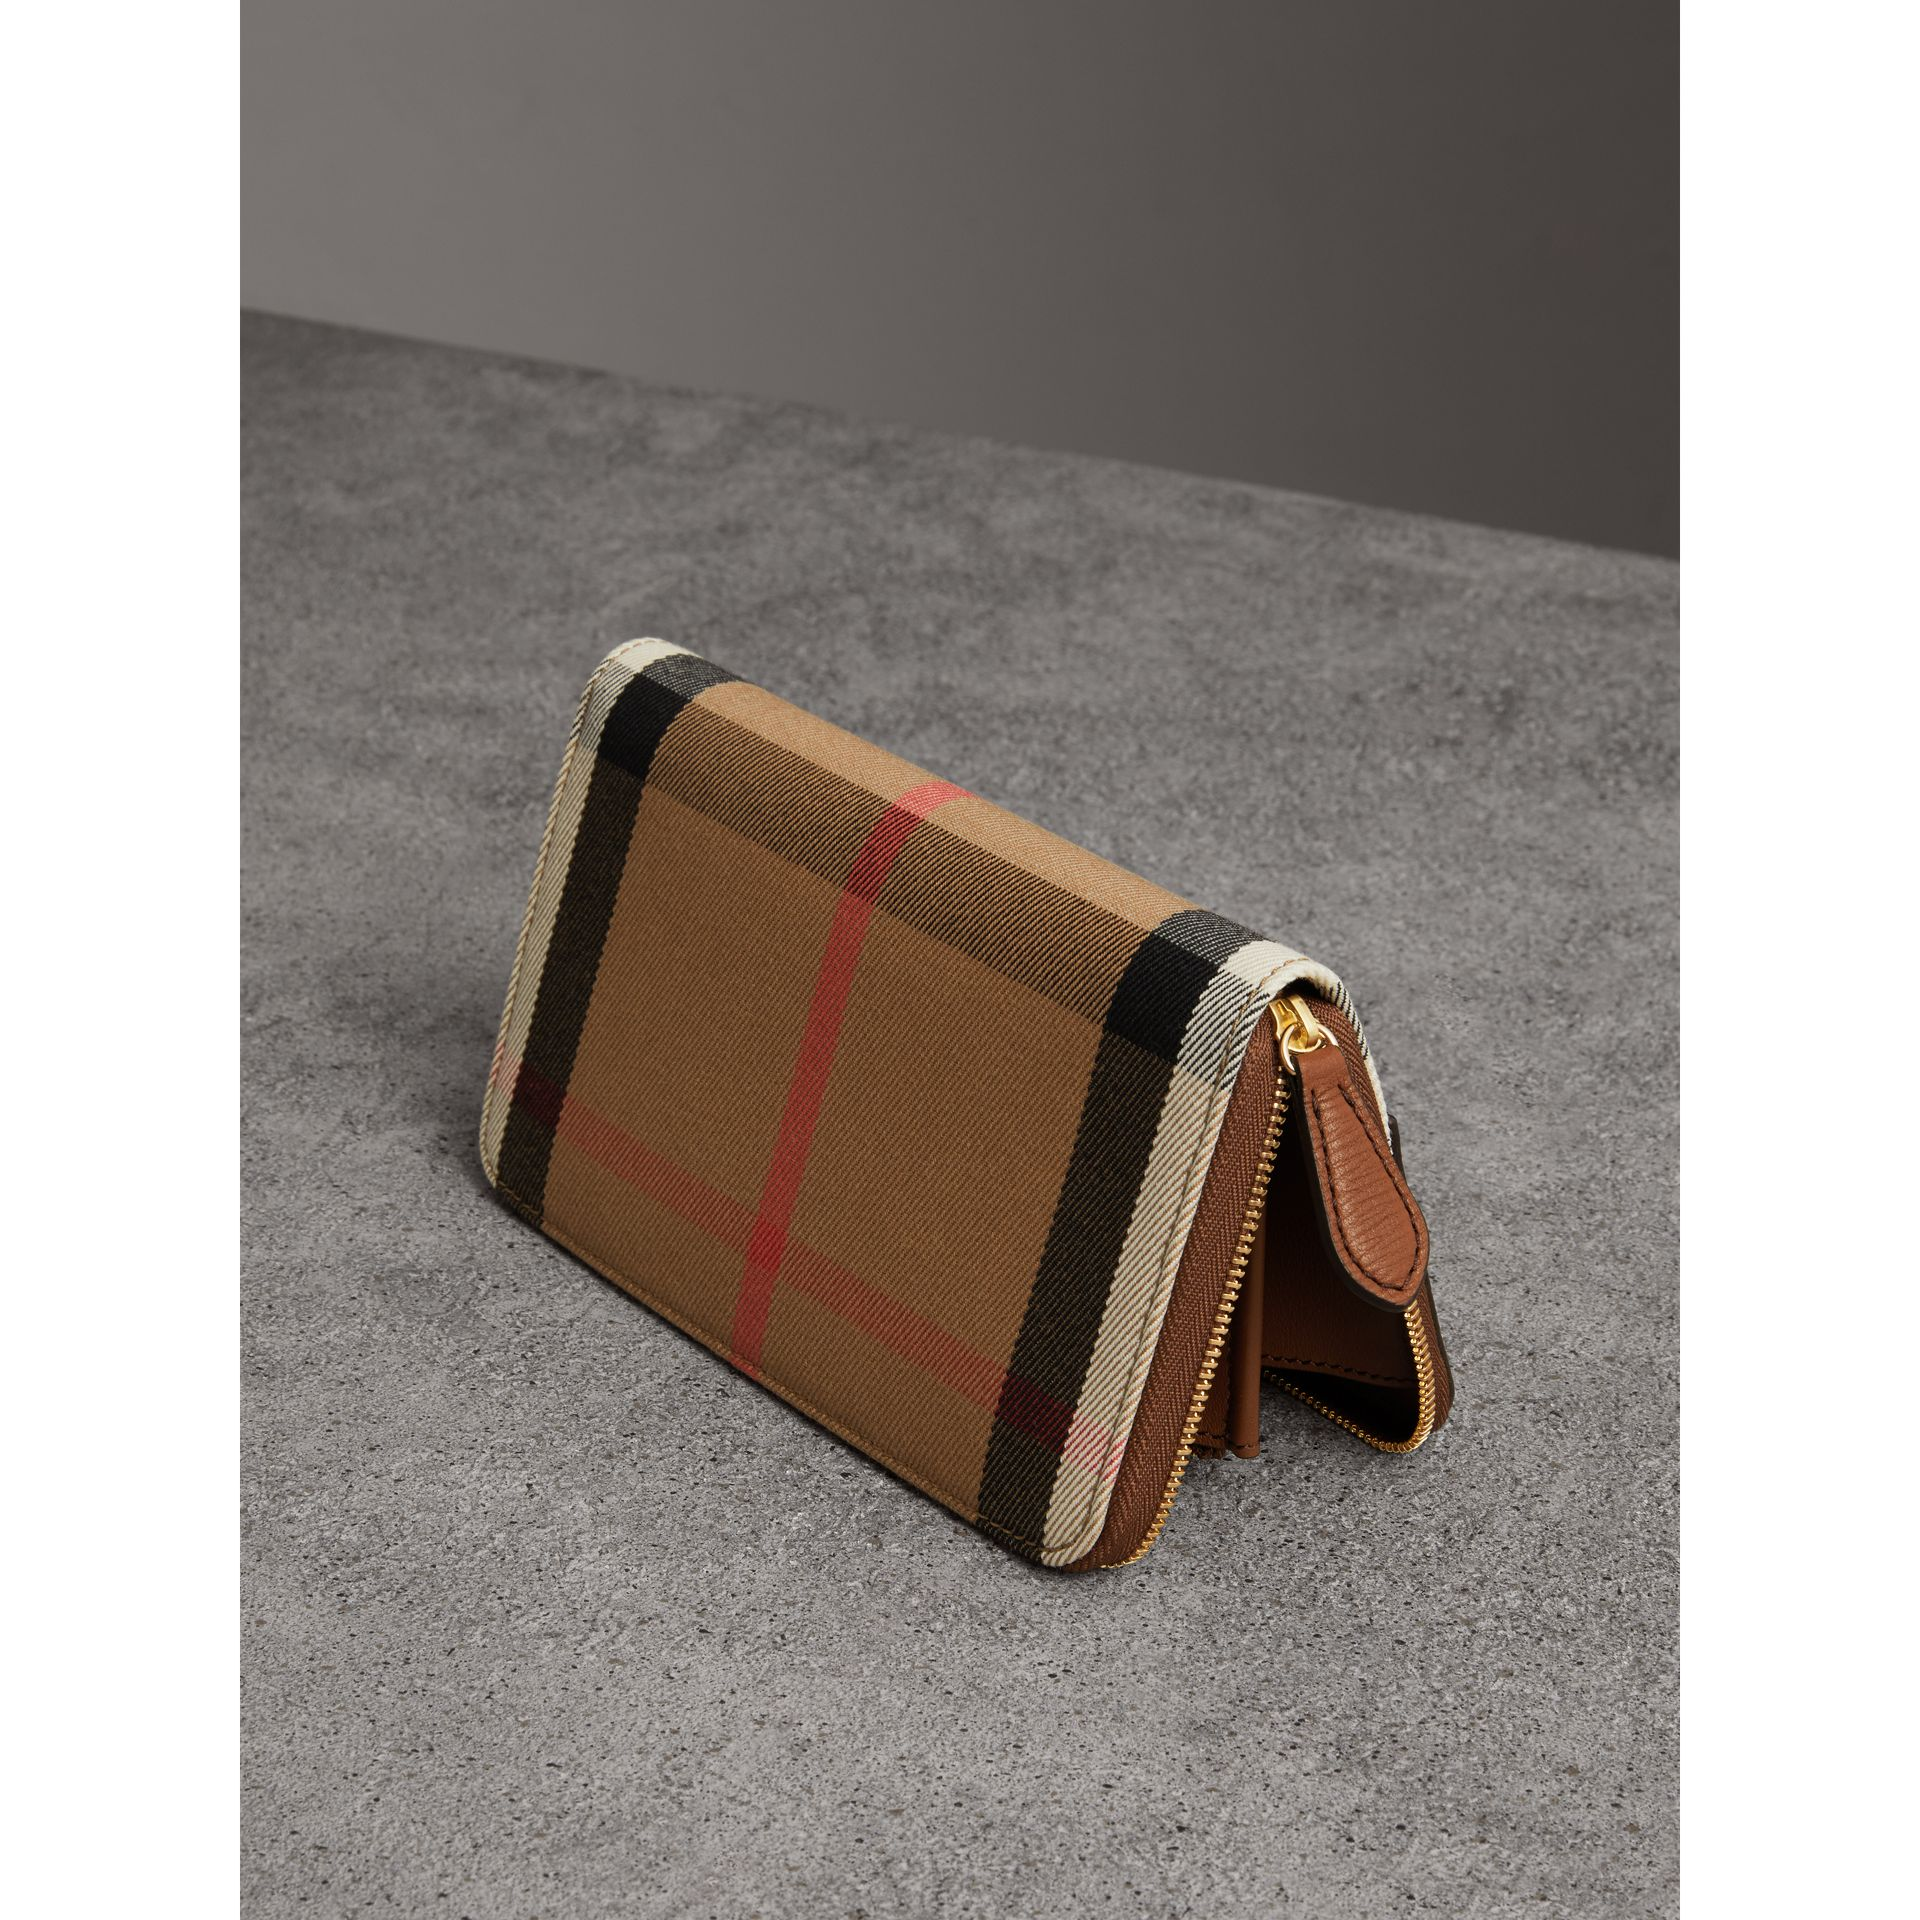 House Check and Leather Ziparound Wallet in Brown Ochre - Women | Burberry Canada - gallery image 3